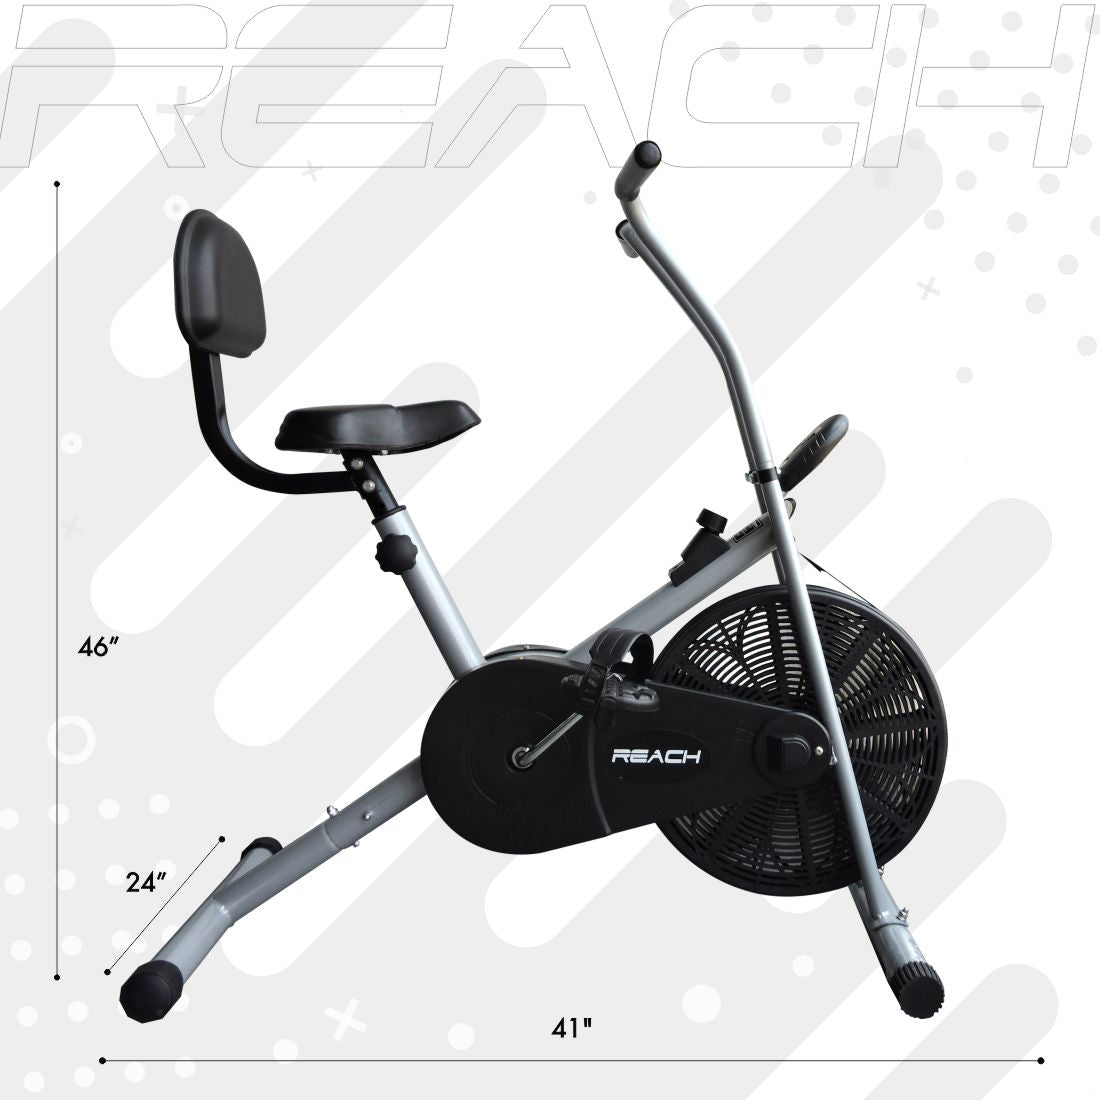 Dimensions of a silver Reach Air Bike (stationary handles) with back support attached